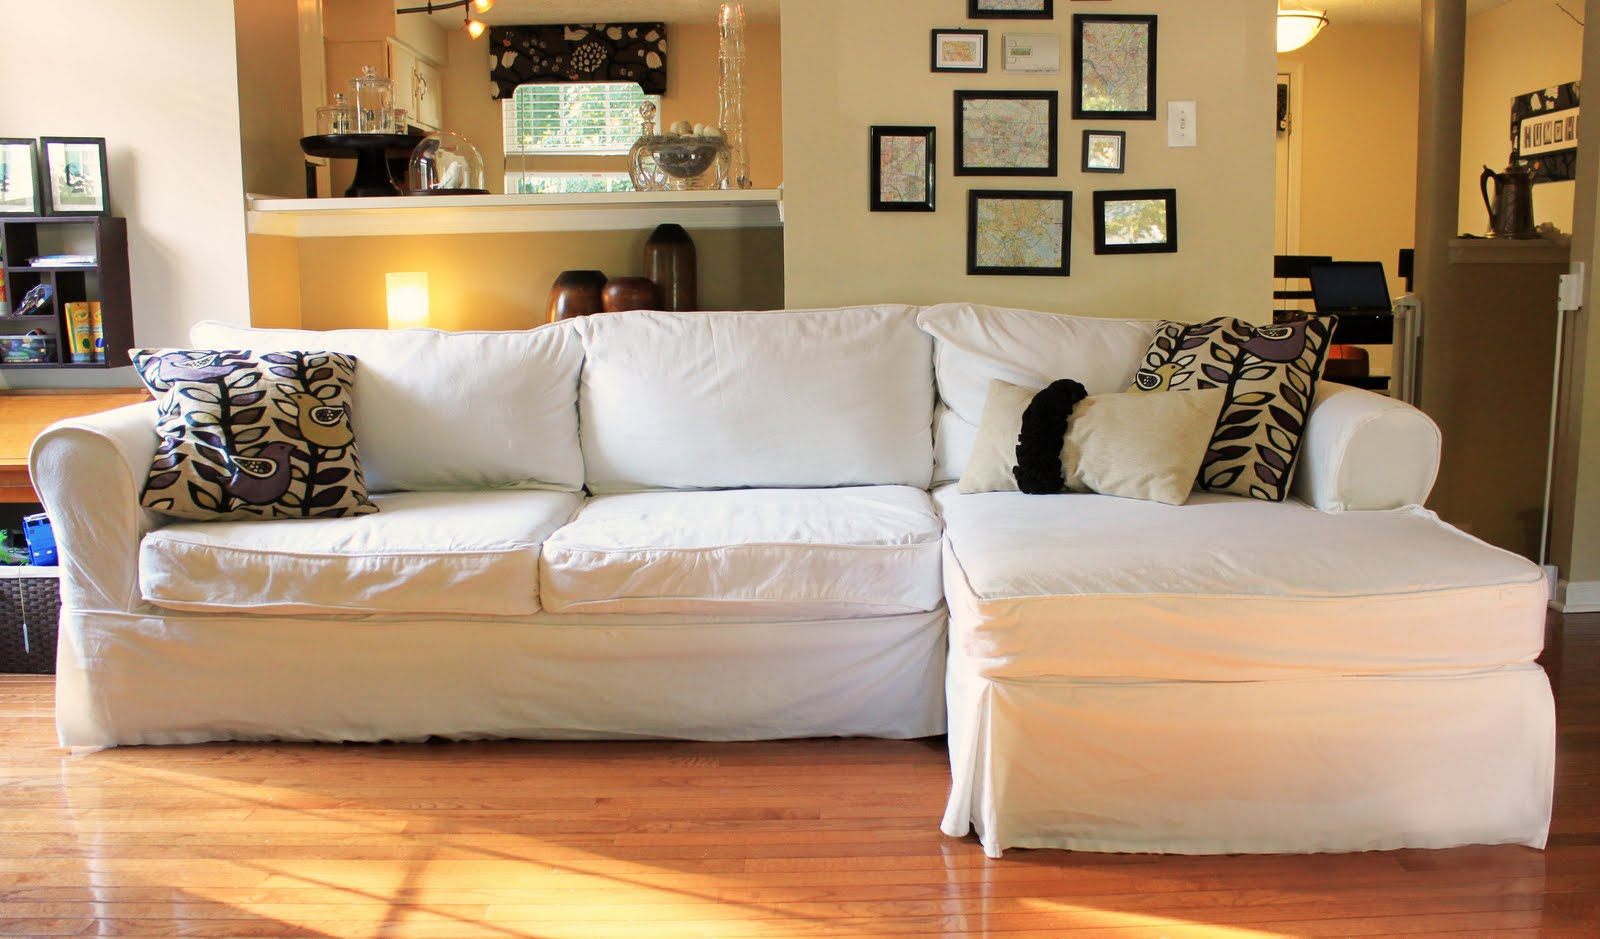 Awesome Slipcovers For Sectional Couches | HomesFeed